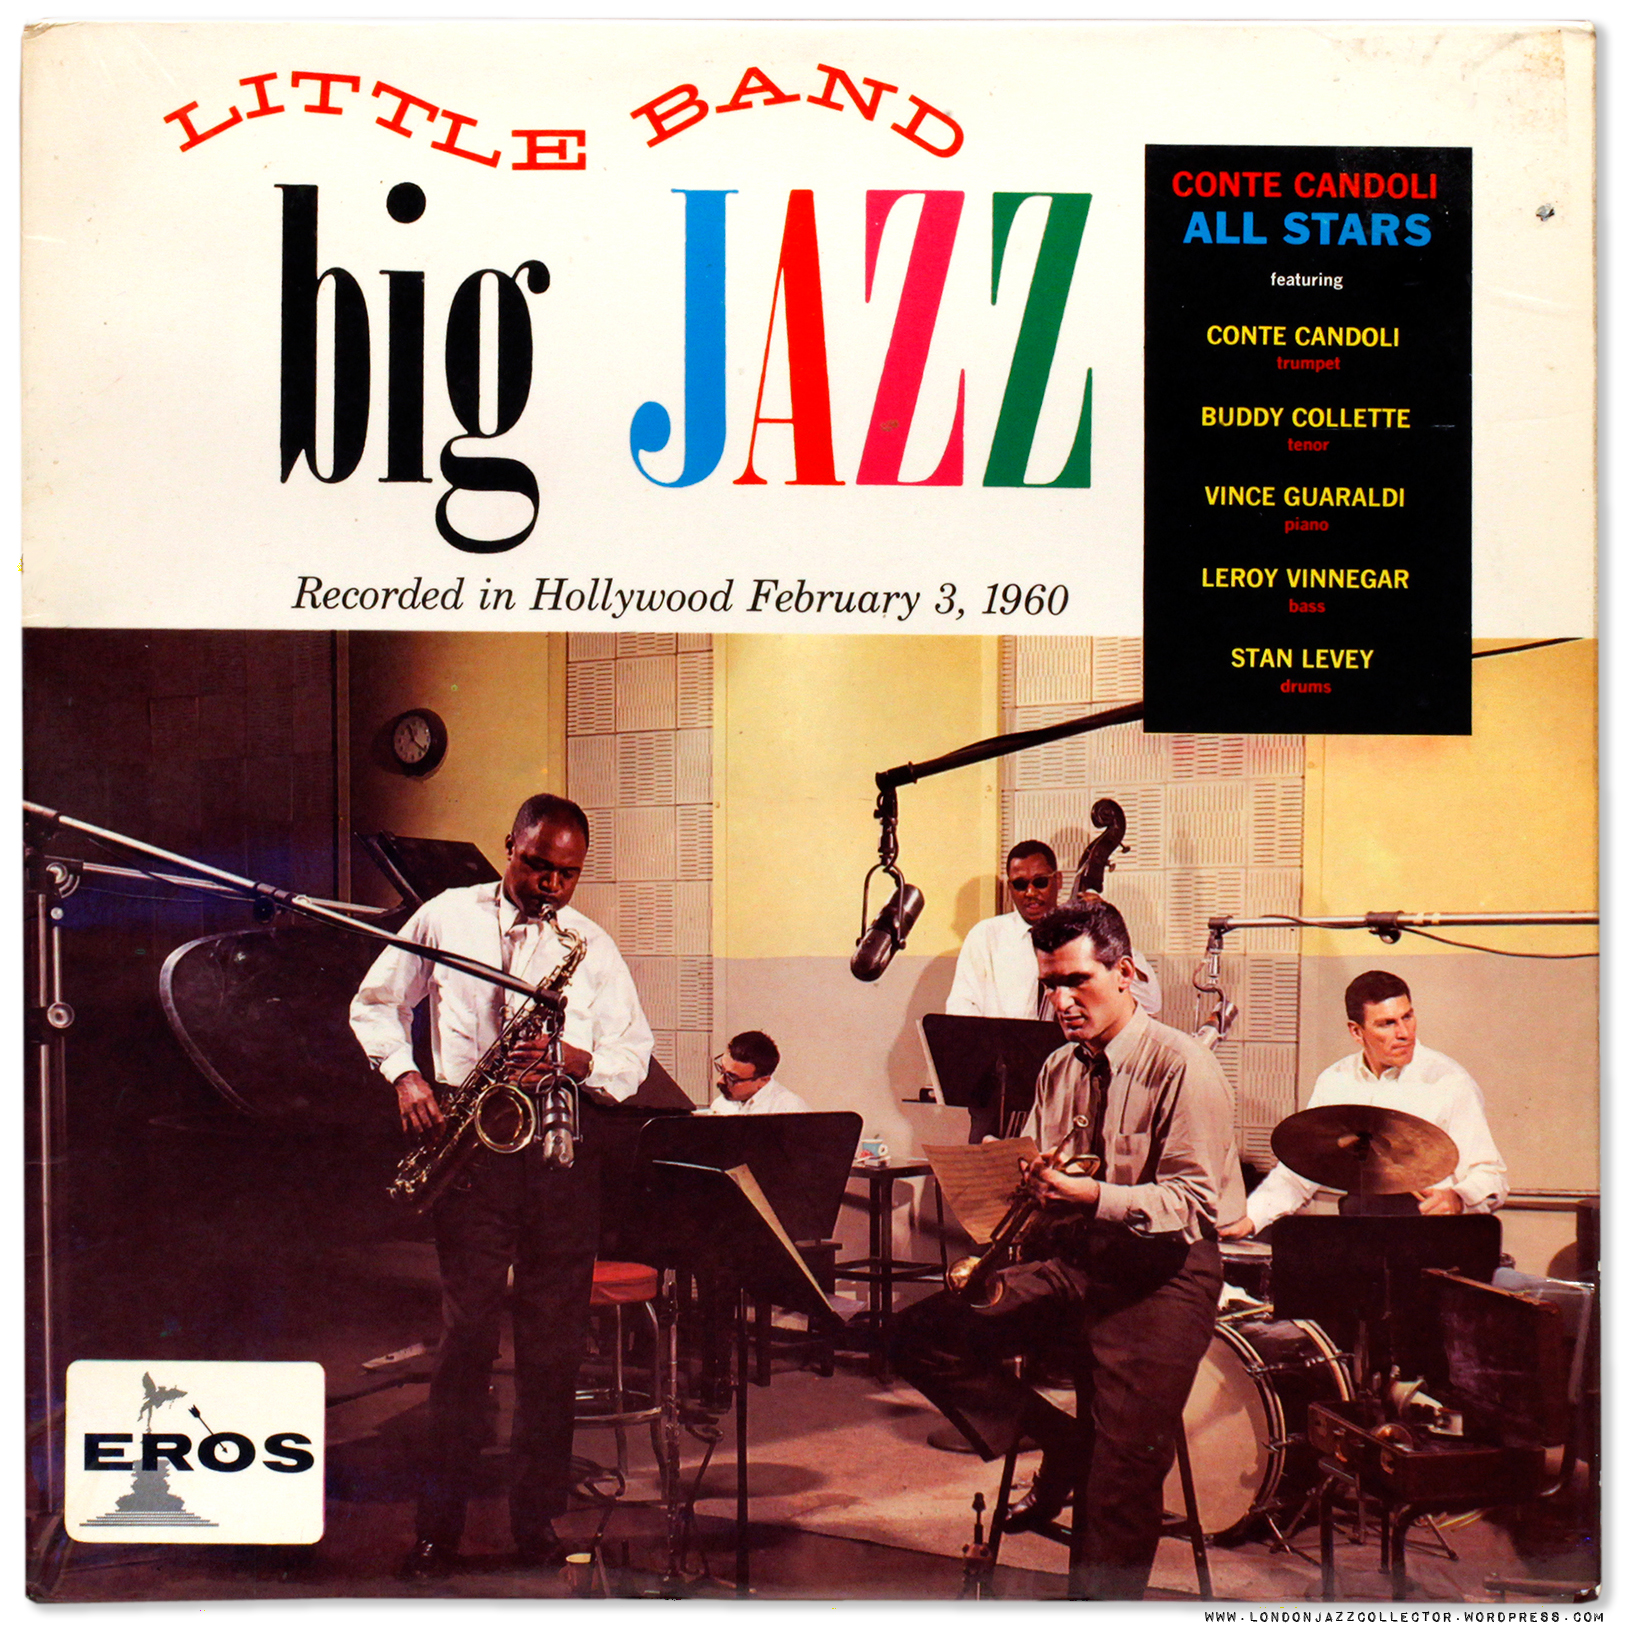 littlebandbigjazz-candoli-cover-1600-1-l